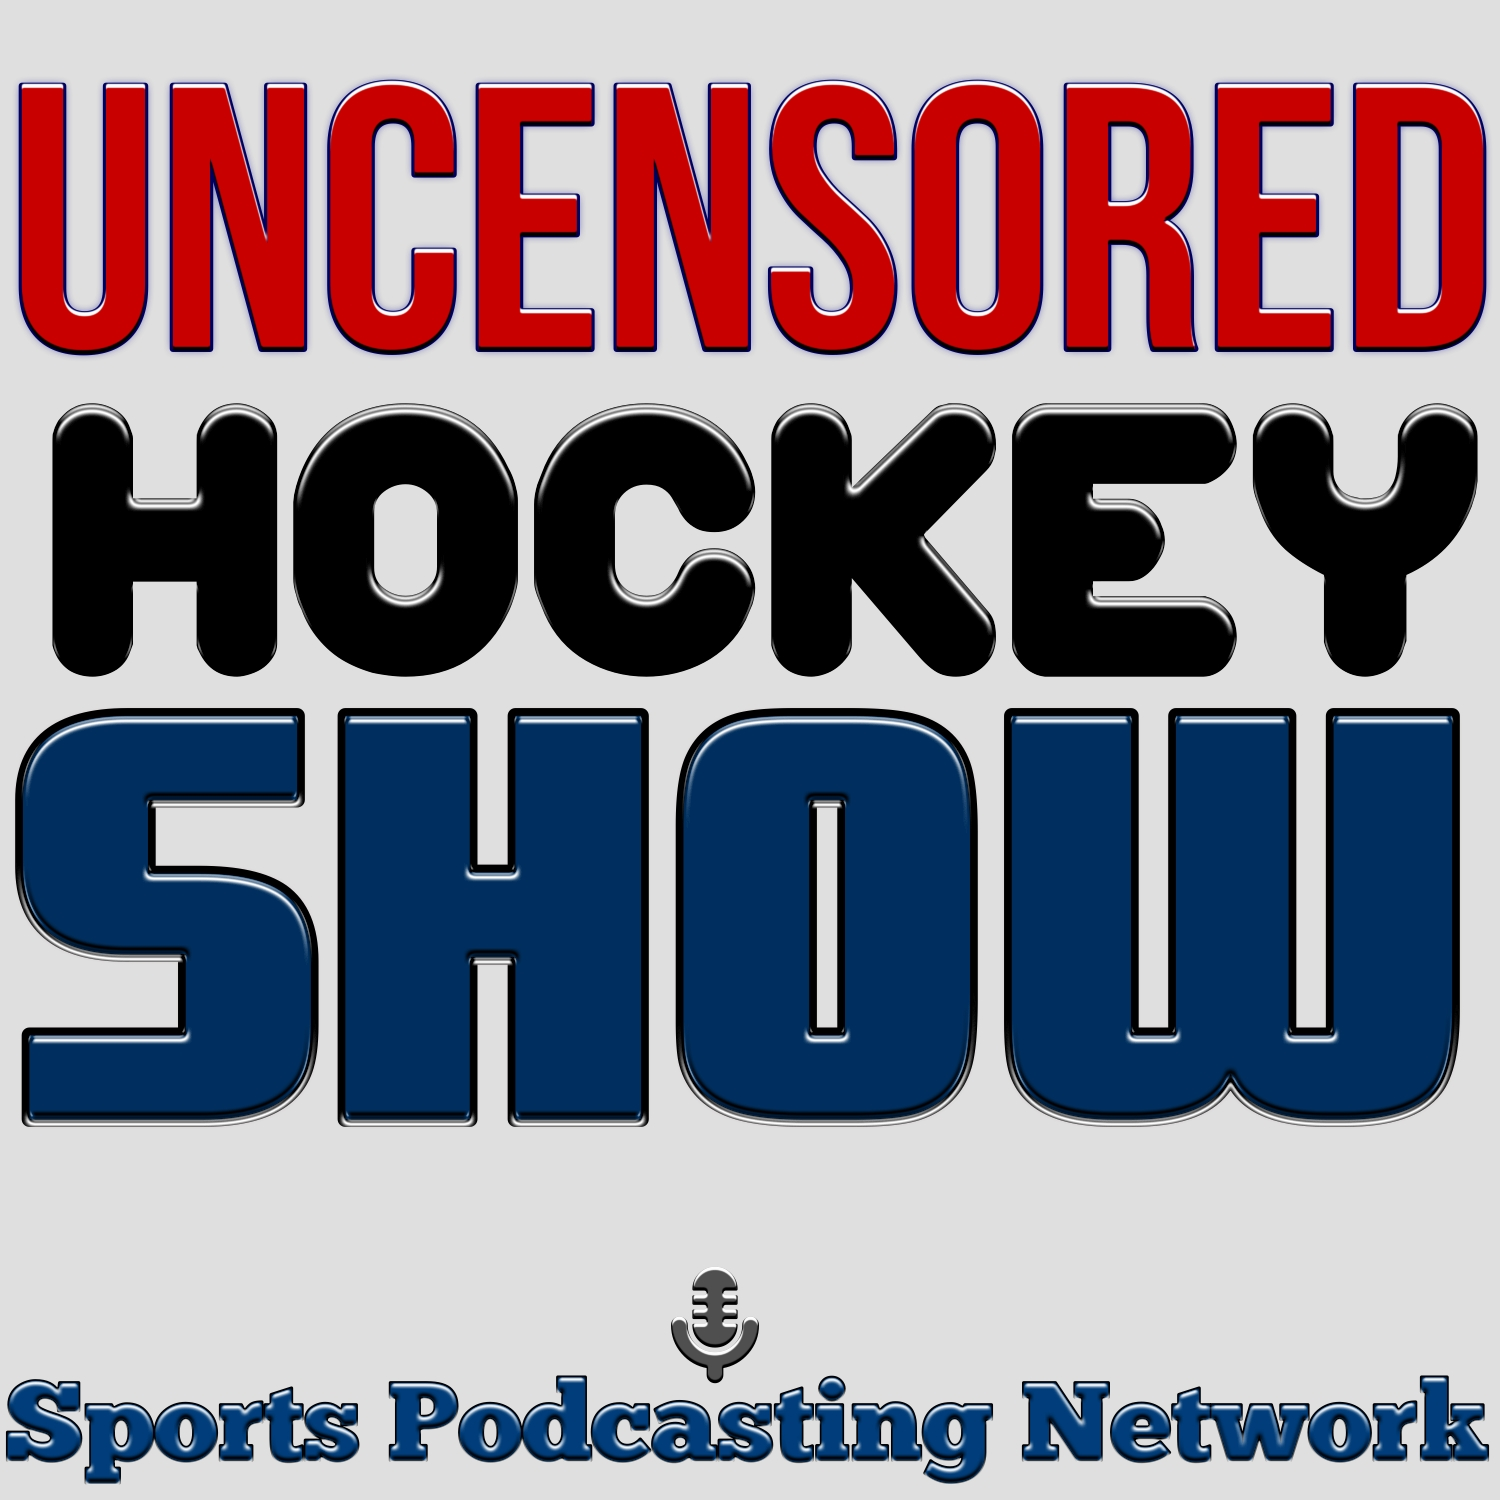 Uncensored Hockey Show – Sports Podcasting Network